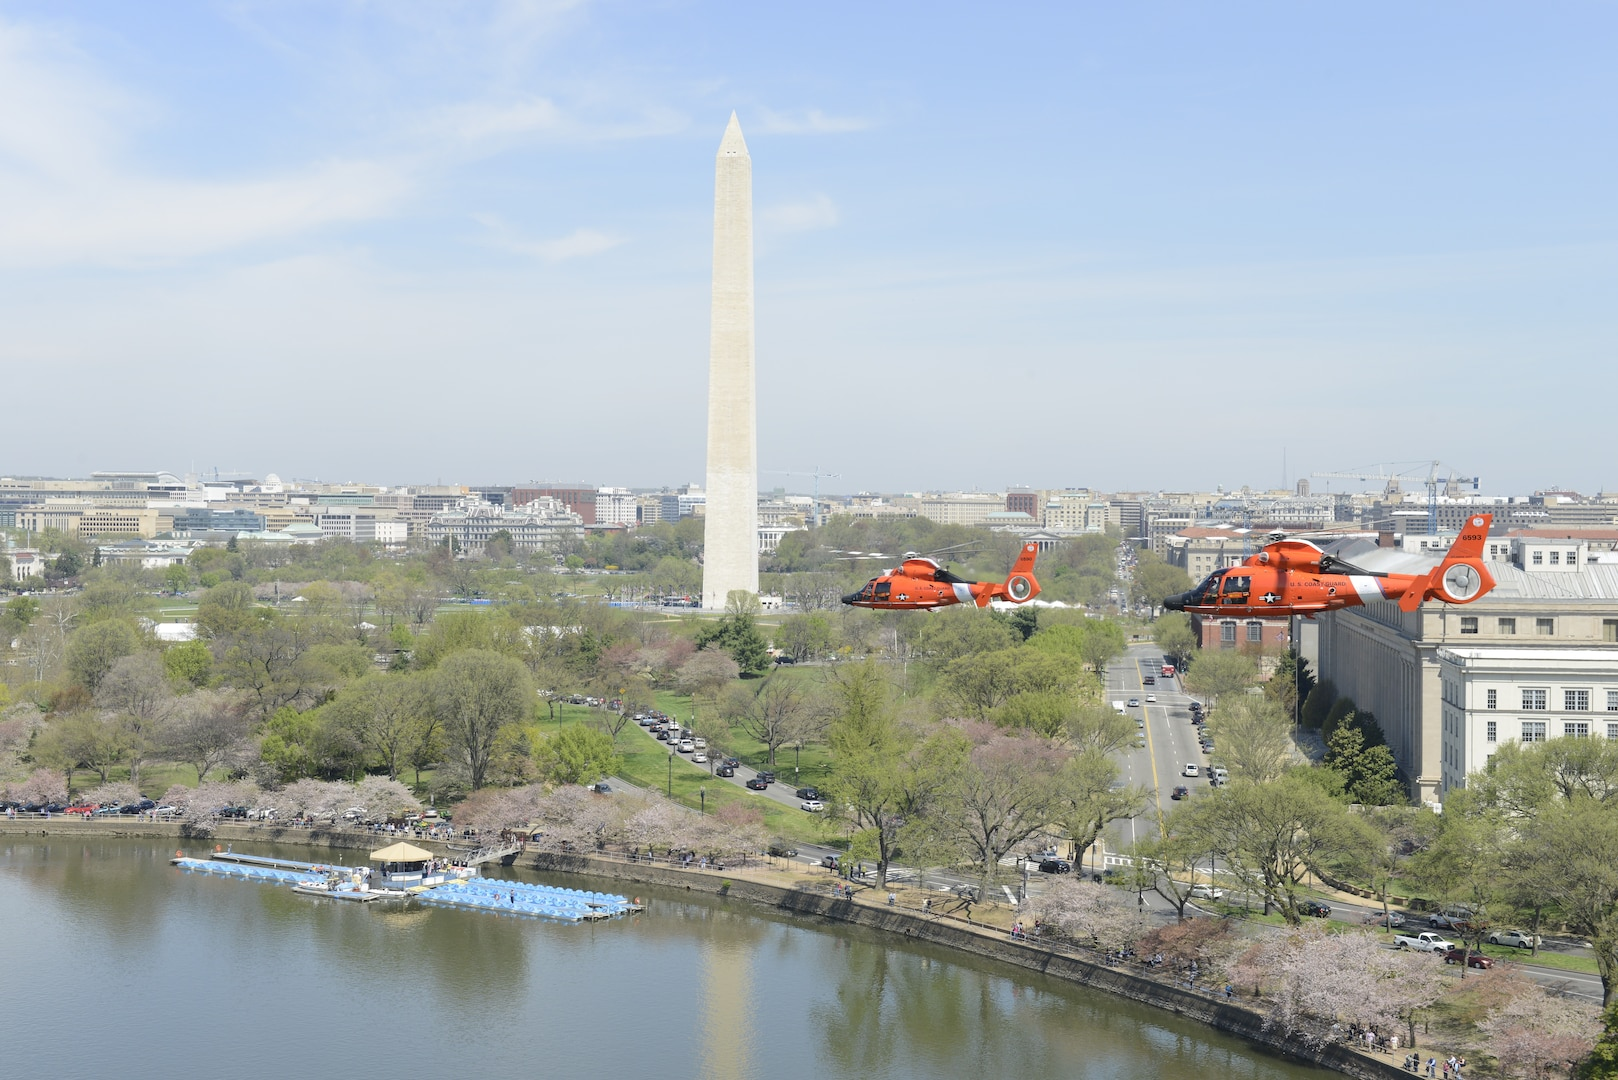 An MH-65 Dolphin helicopter crew from Coast Guard Air Station Atlantic City, N.J., flies over Washington on a training flight Thursday, April 16, 2015. Aircrews from Coast Guard Air Station Atlantic City train to stay proficient for the Rotary Wing Air Intercept mission over the nation's capital and other critical areas throughout the country. (U.S. Coast Guard photo by Petty Officer 3rd Class David Micallef)